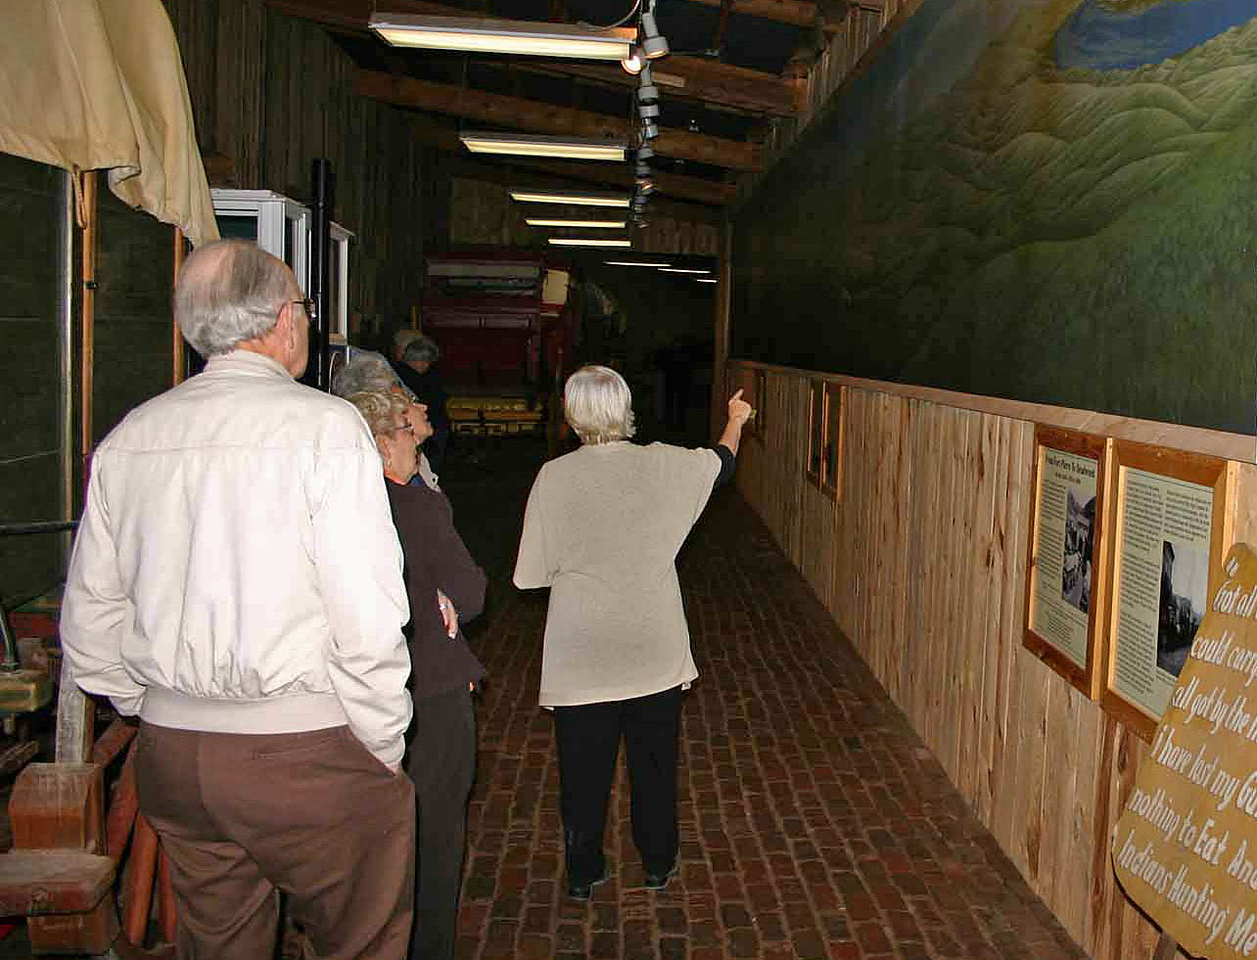 Some items won't be able to be saved as most exhibits and artifacts migrate to a new building.  Among the items that will not make the transition is this remarkable mural.